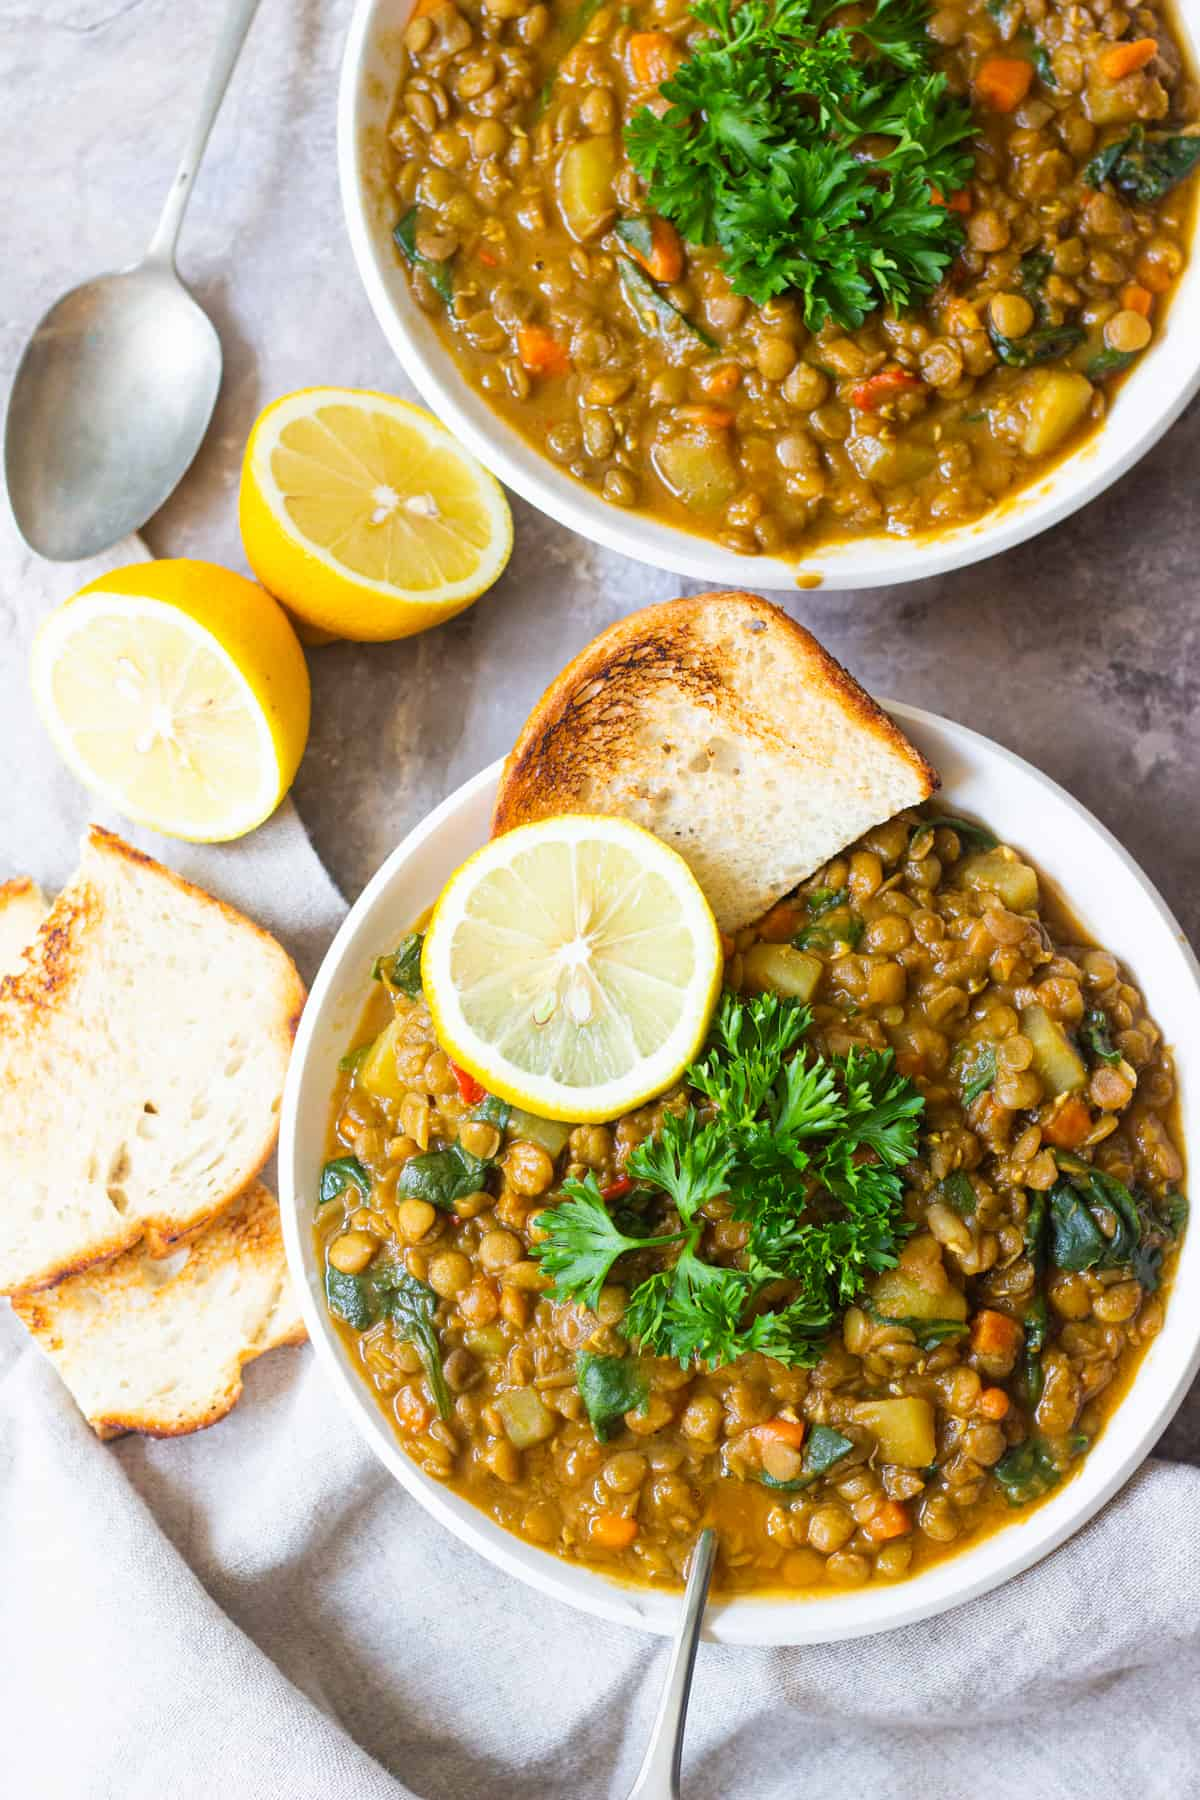 This green lentil soup is great for weeknight dinners. Finally, a lentil soup recipe that's jam-packed with Mediterranean flavors!